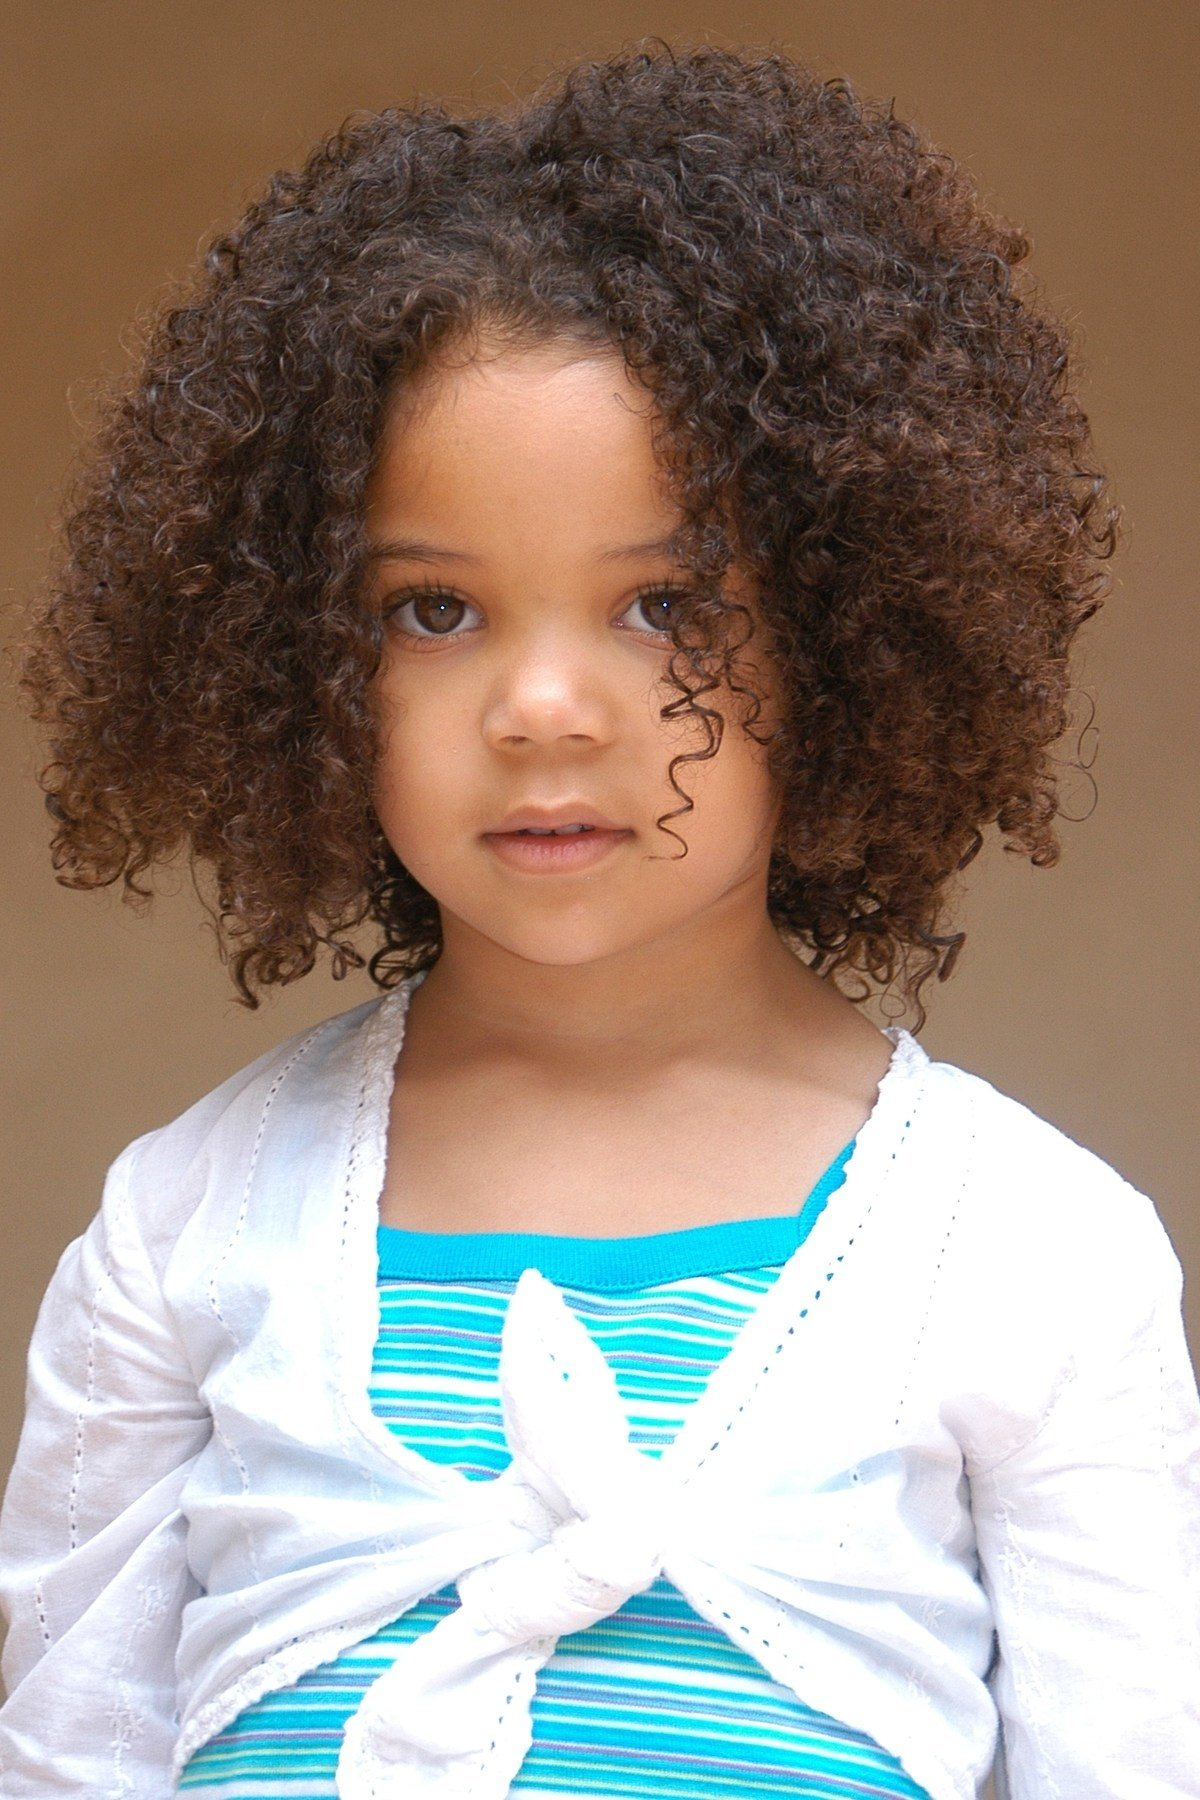 The Best Mixed Girl Short Hairstyles Fade Haircut Pictures